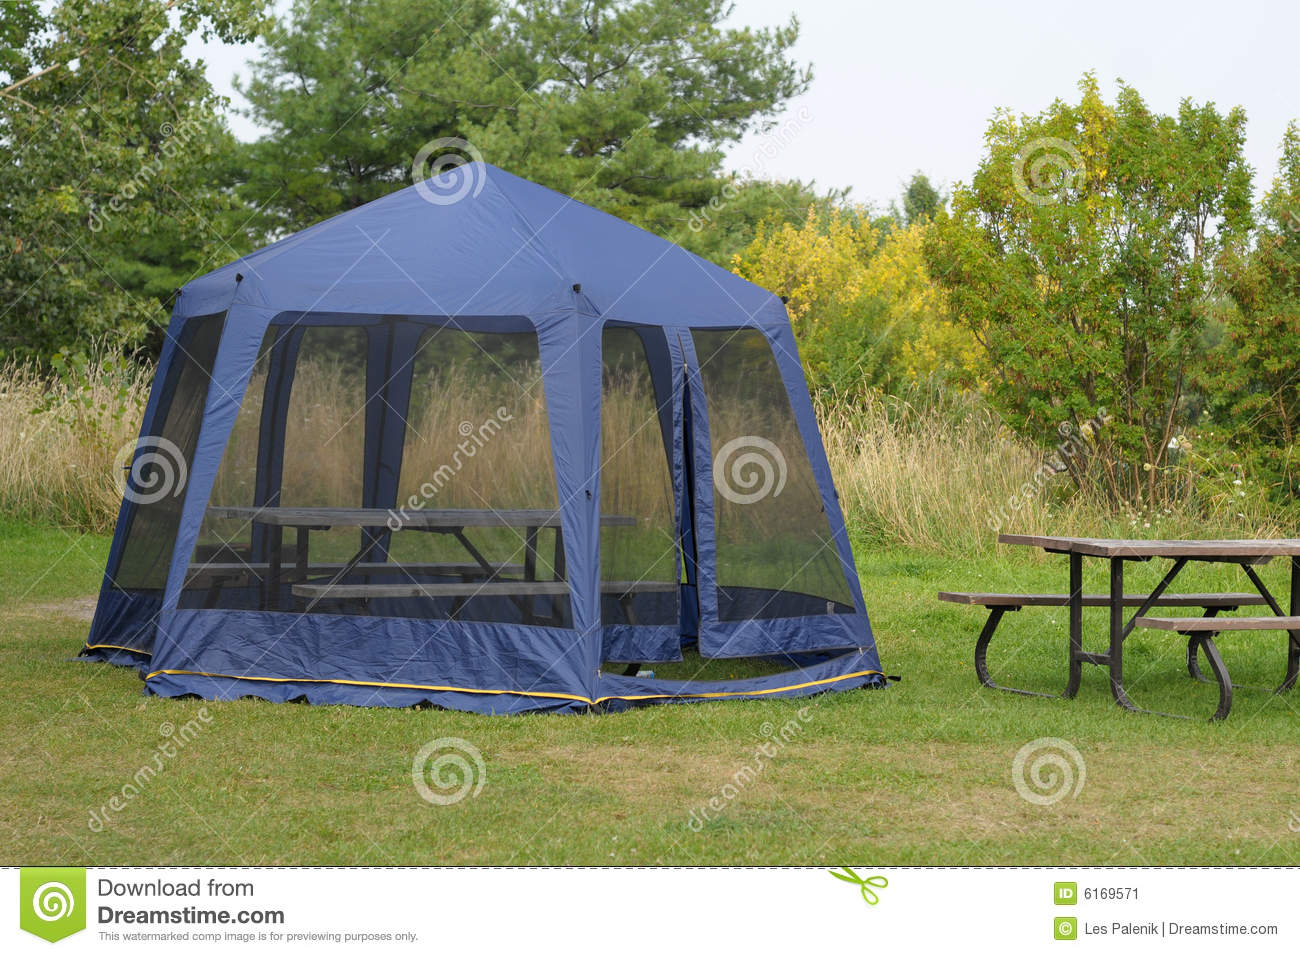 Blue screen tent & Blue screen tent stock image. Image of campsite shelter - 6169571